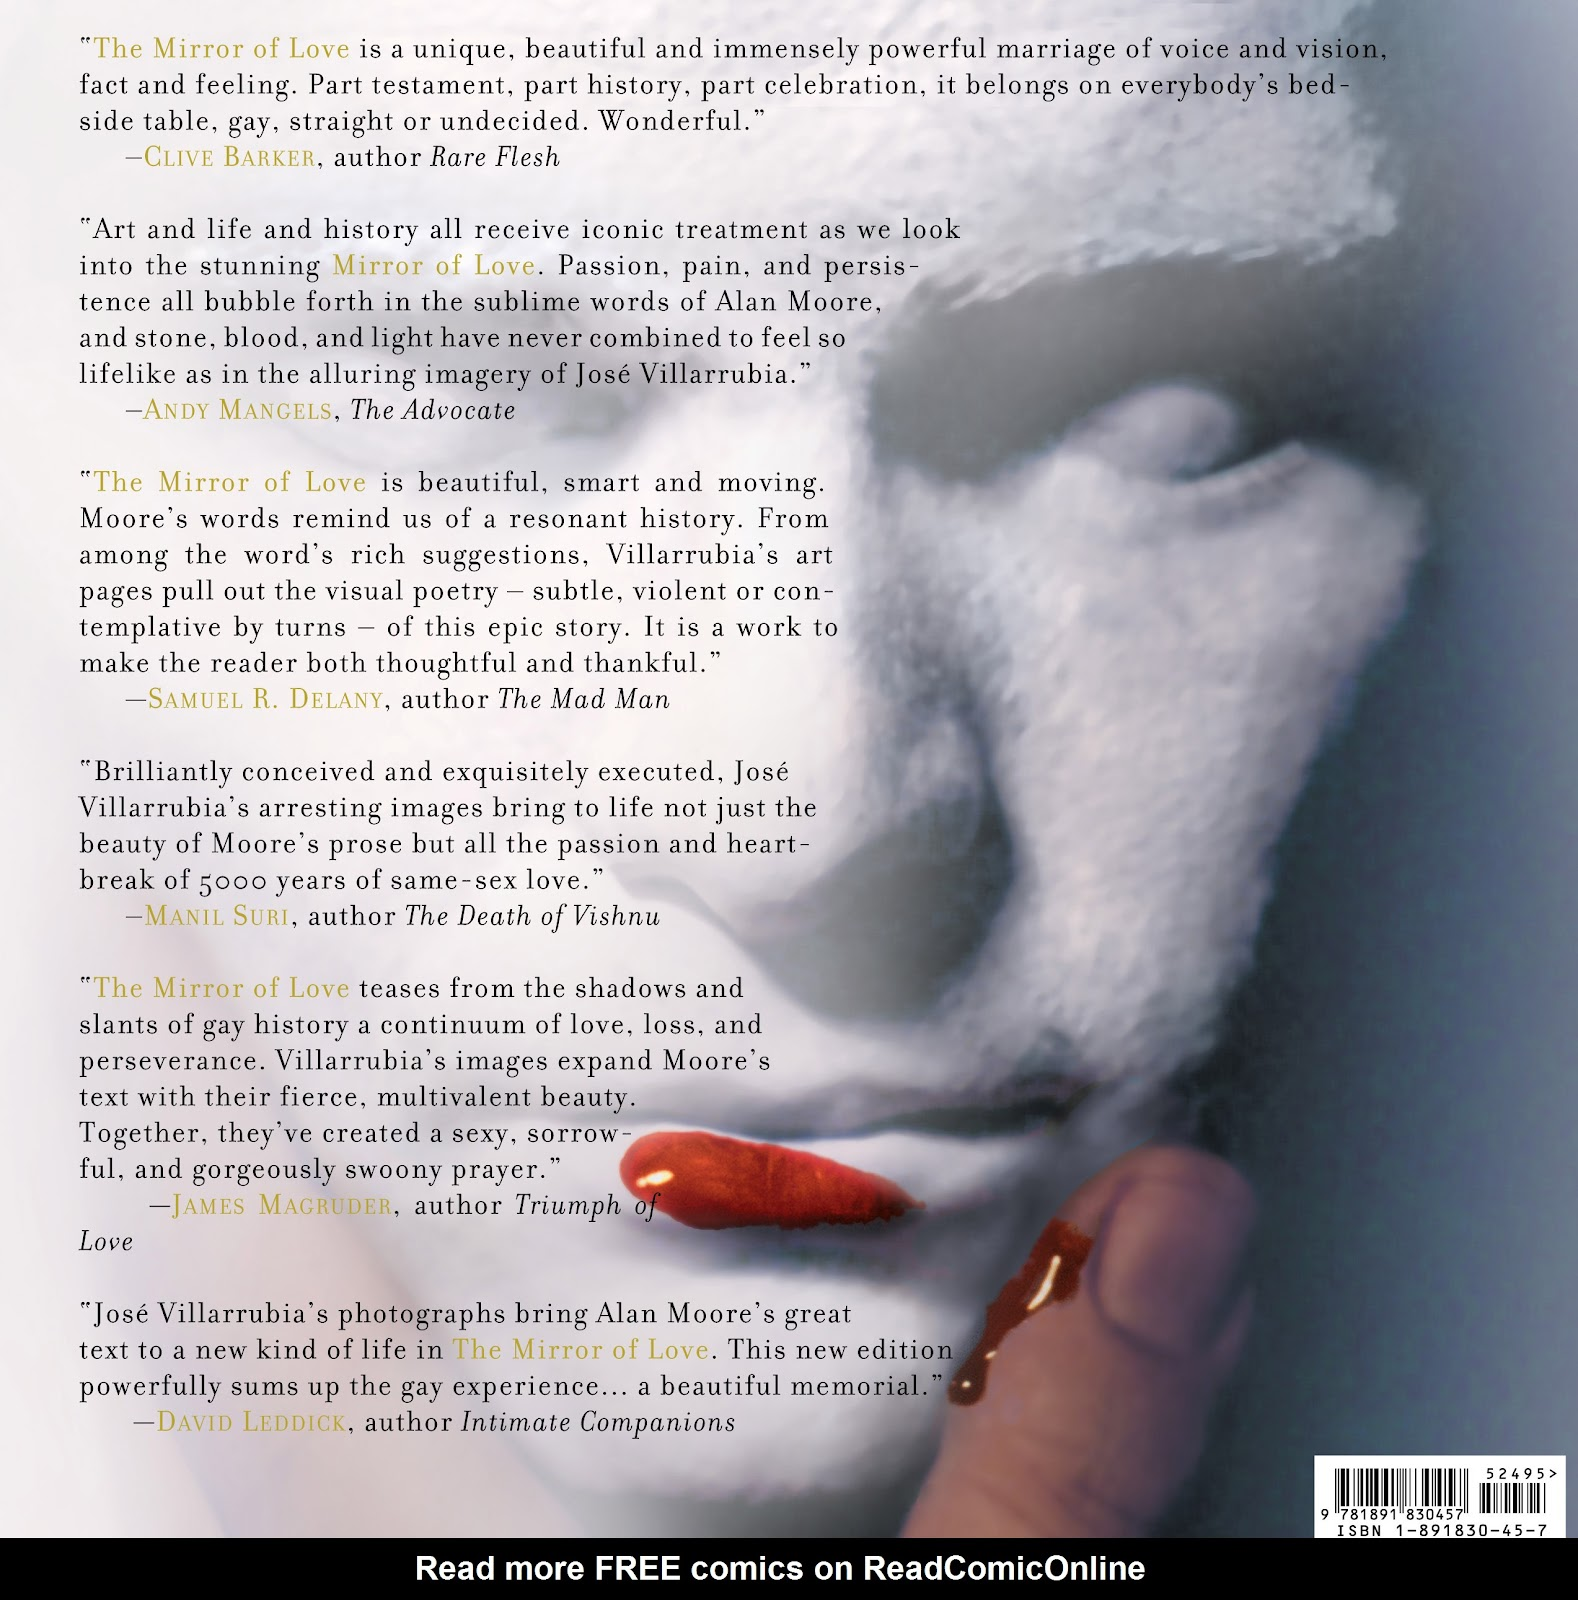 Read online The Mirror of Love comic -  Issue # TPB - 130